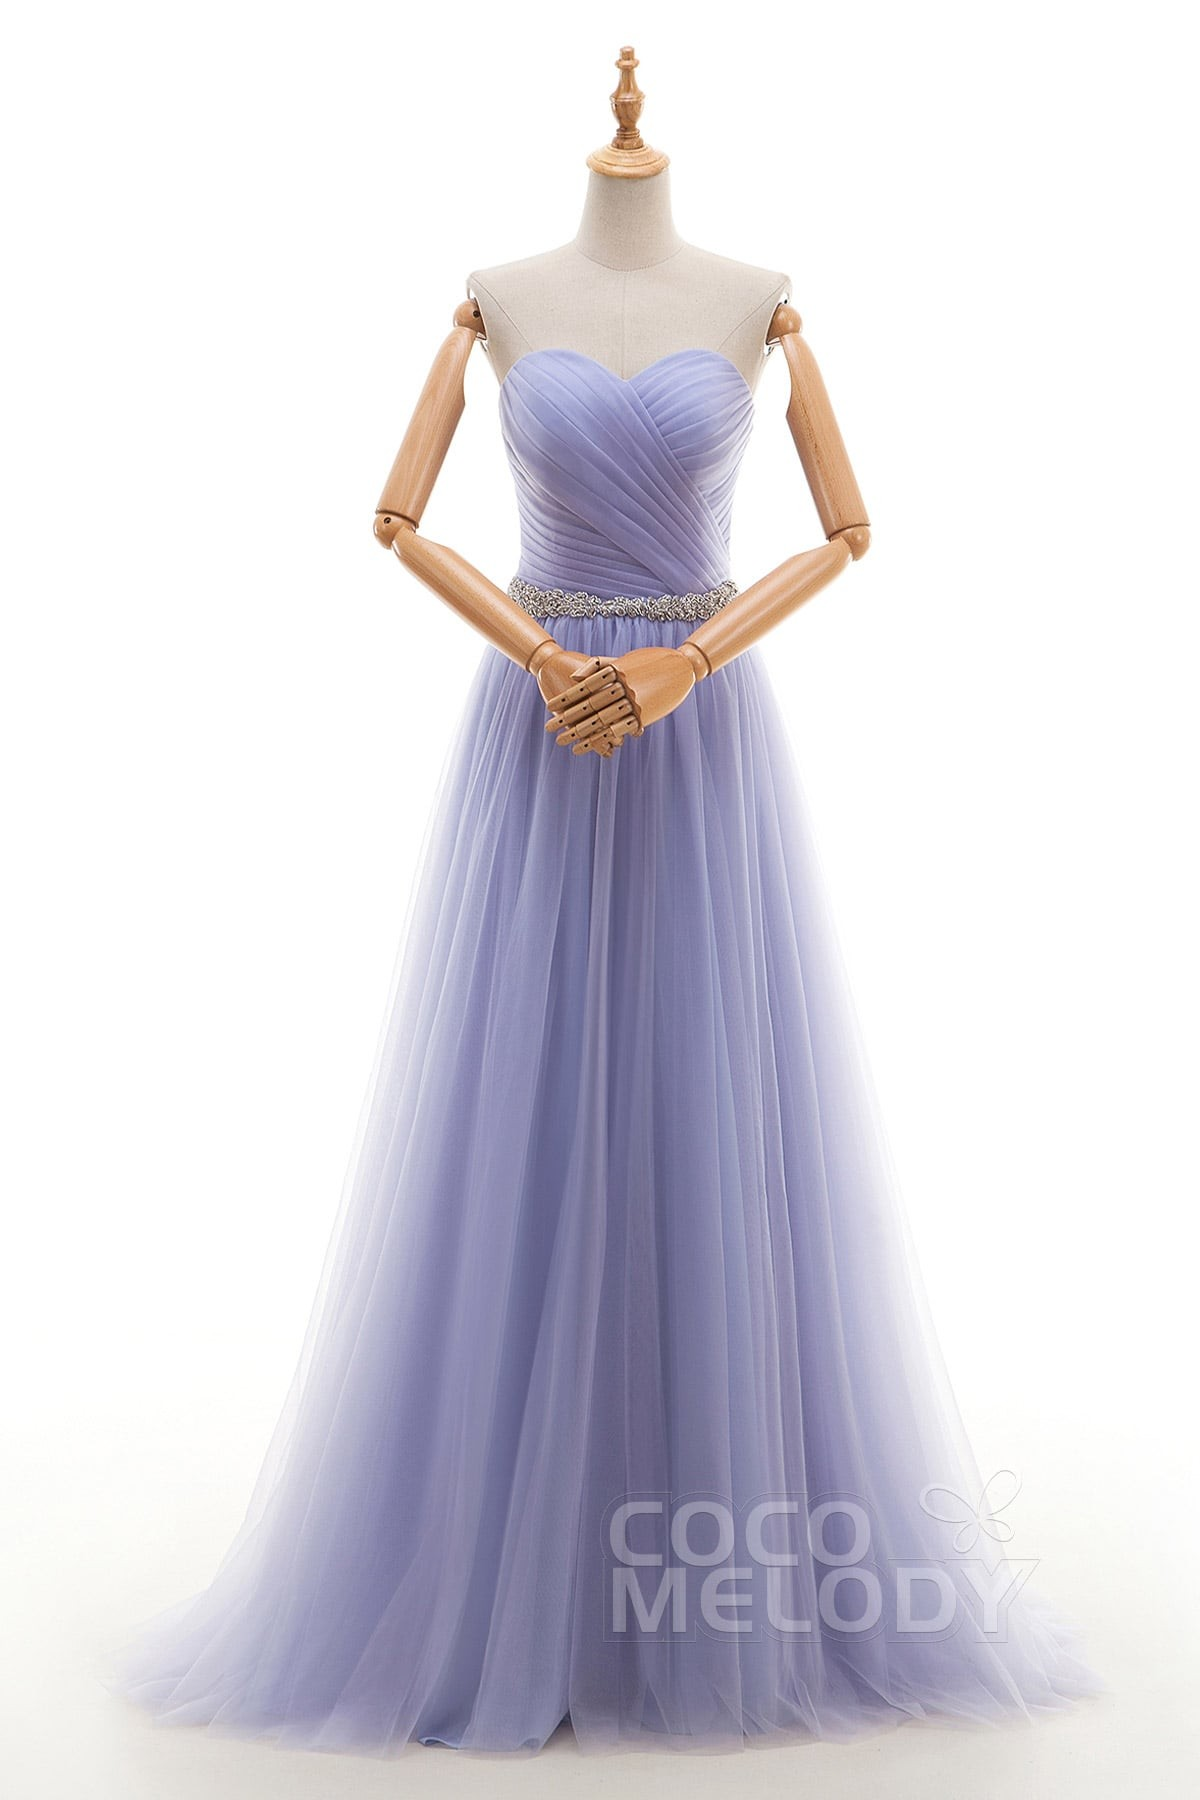 579ab4a20a3 A-Line Court Train Tulle Evening Dress Beading Pleating COZT16002 ...